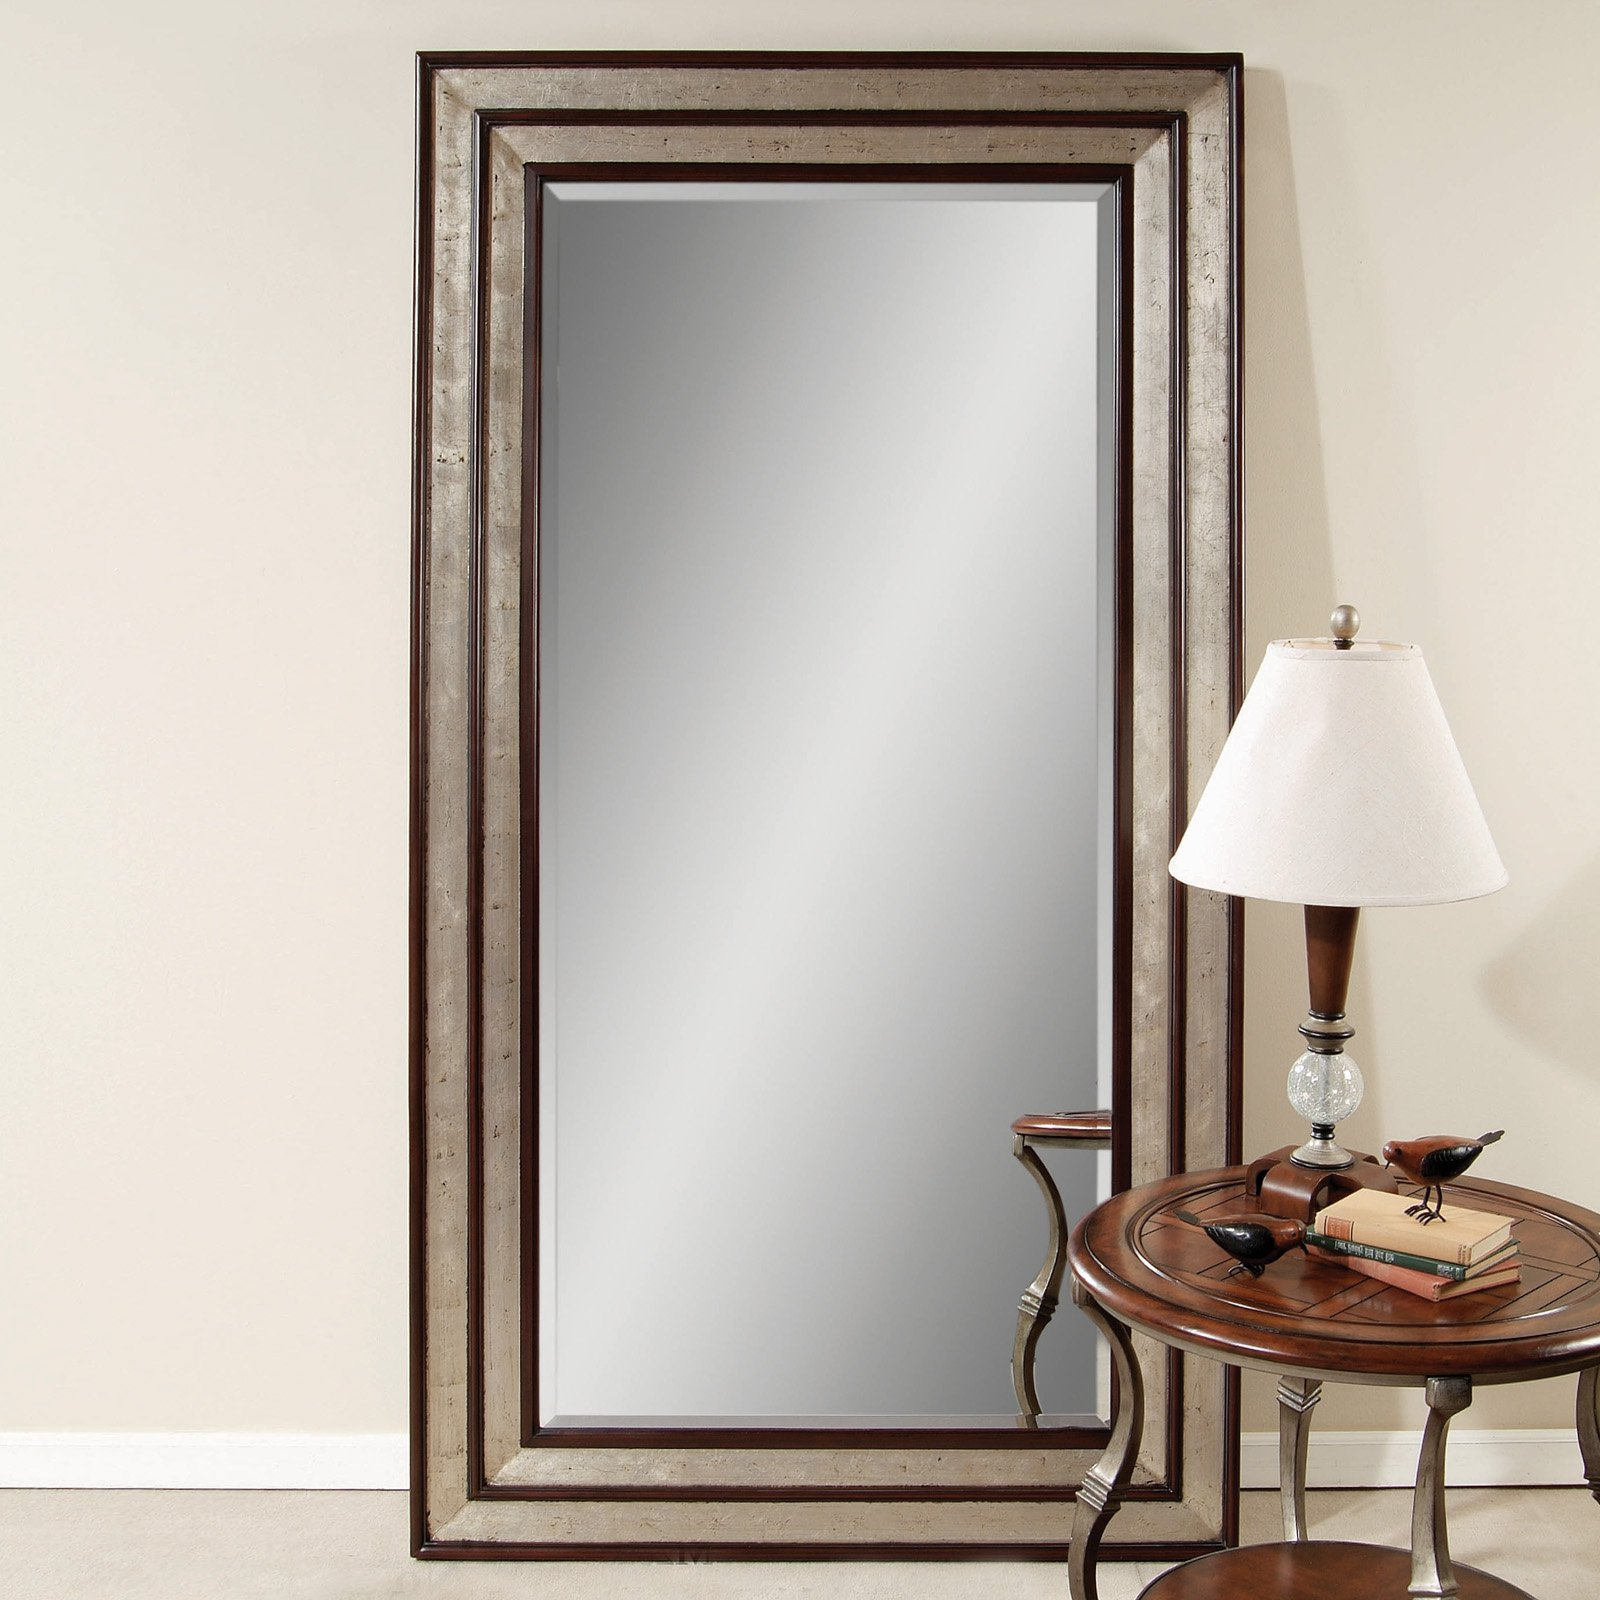 Silver Leaf Black Accent Floor Leaner Mirror W X H Fall Leaves Clip With Regard To 2020 Silver Frame Accent Mirrors (View 9 of 20)